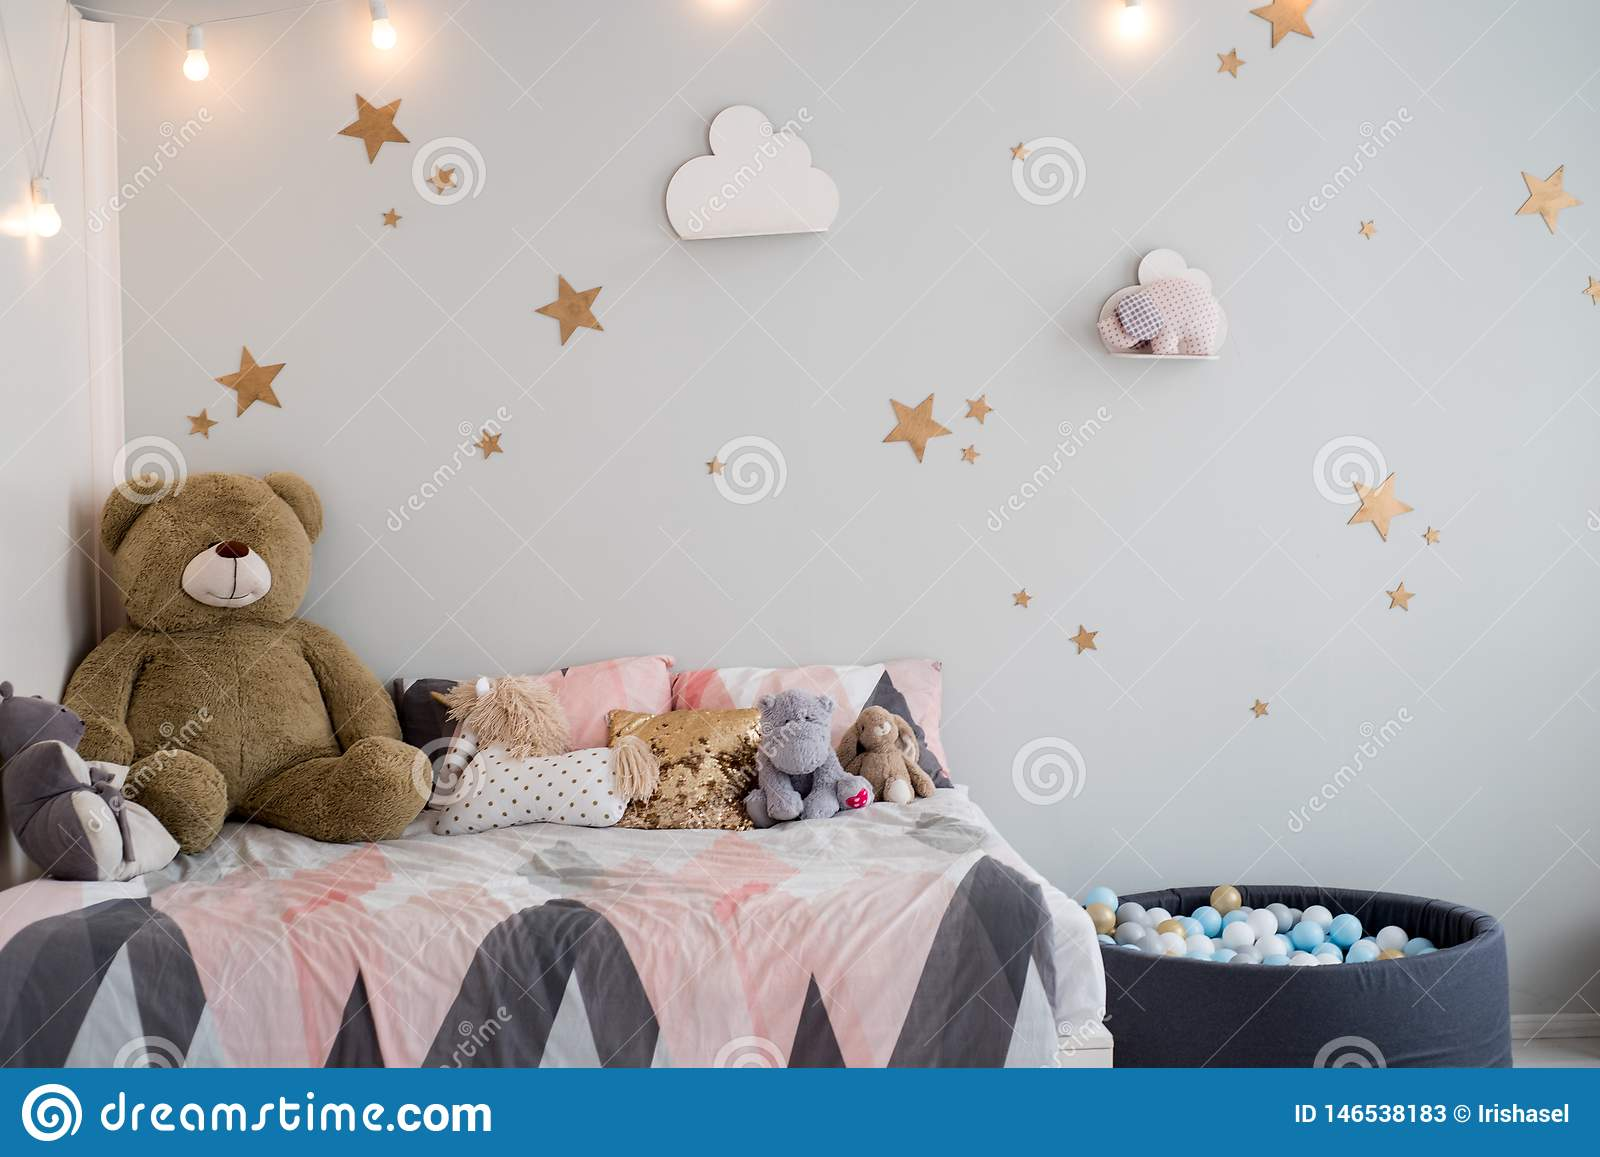 Teddy Bear Between Paper Bags And Wooden Chairs In Child S Room With Pastel Lamp Above Table Stock Image Image Of Bedroom Bear 146538183